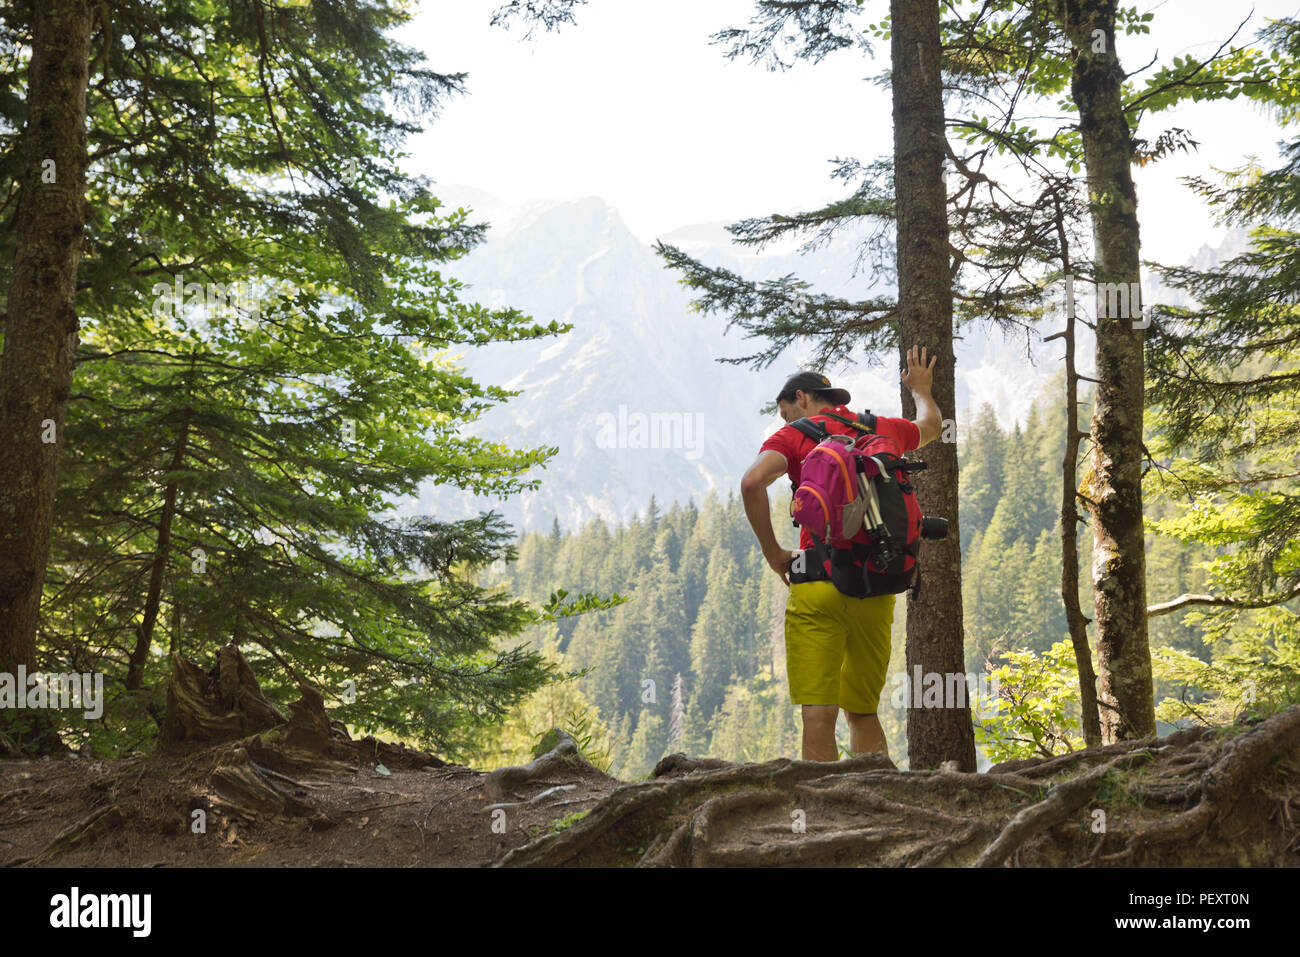 Young man leans exhausted against a tree in a mountain forest, he is on a mountain hike alone in the forest of the Gesäuse National Park in summer. - Stock Image